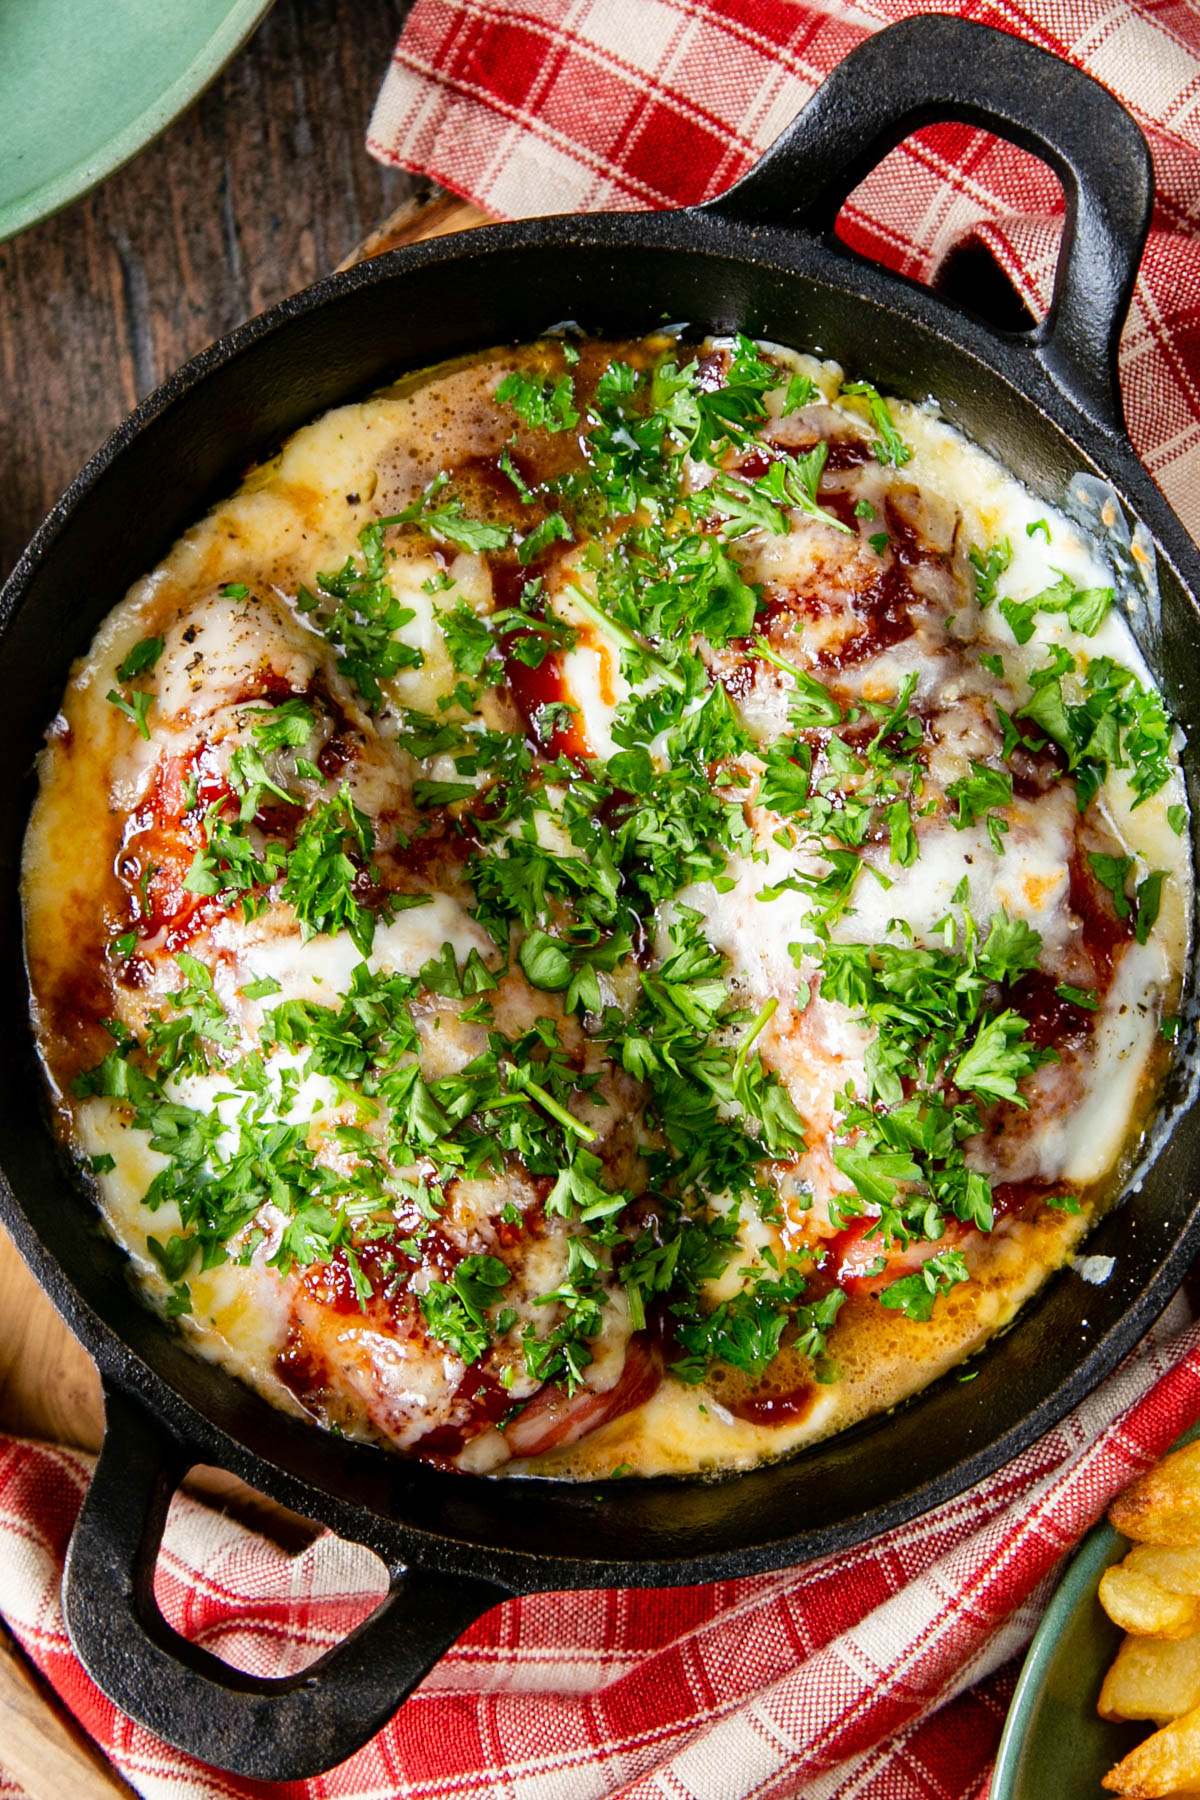 Delicious hunters' chicken for two, oozing with cheese and garnished with green parsley, ready to enjoy. Picture taken from above.